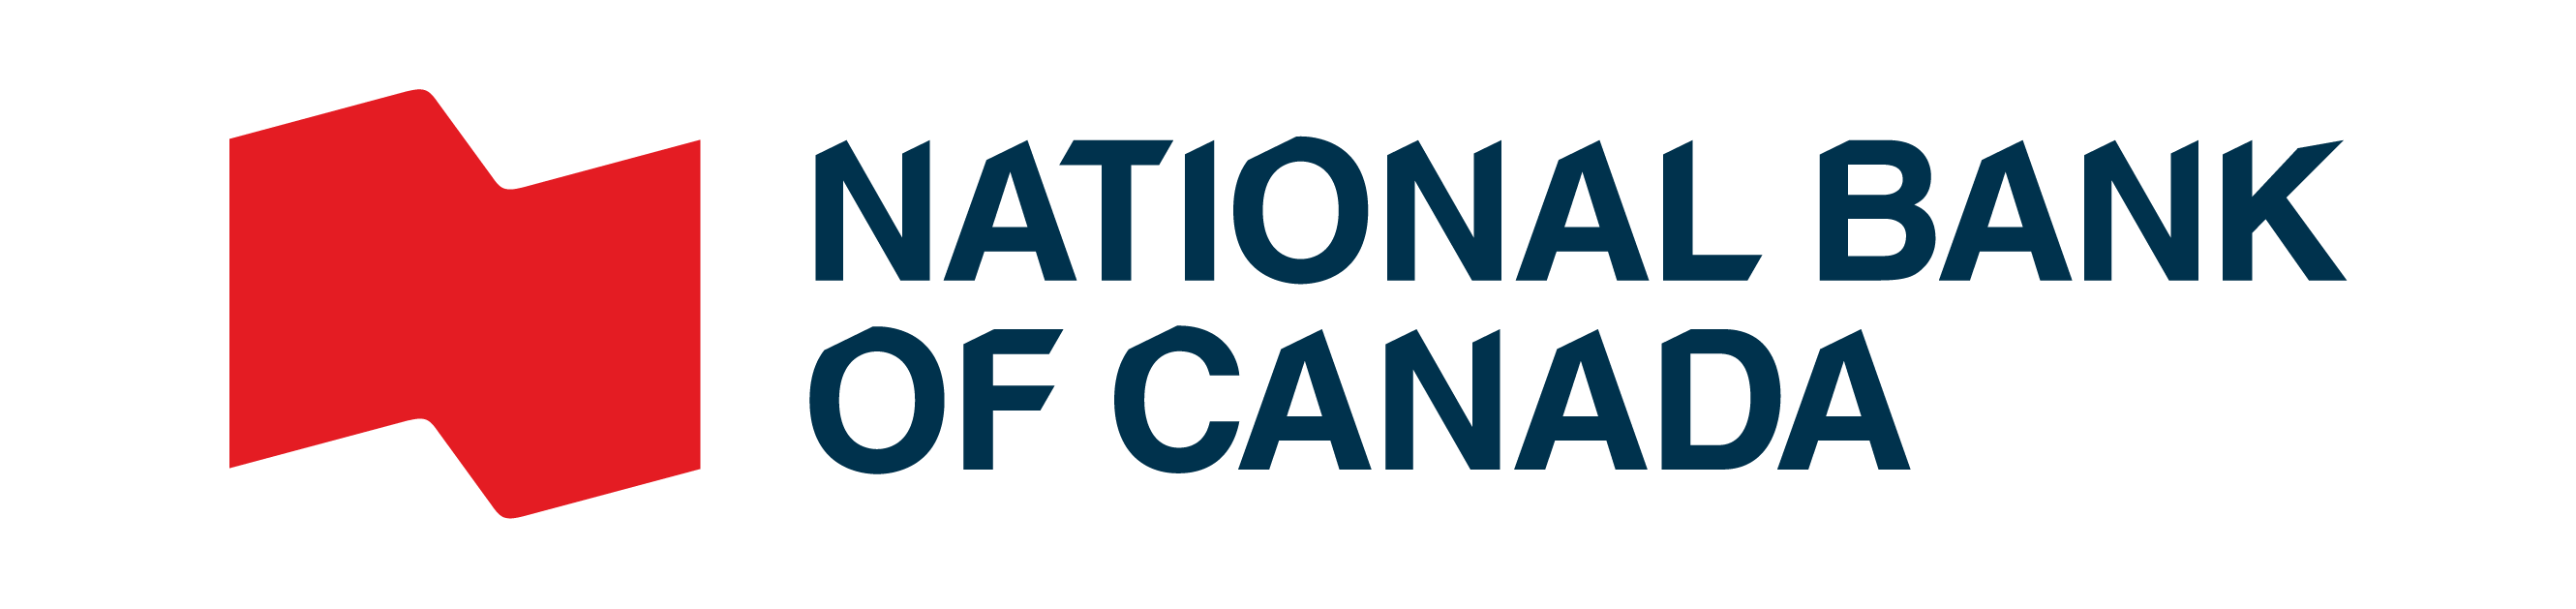 Logotipo do National Bank of Canada